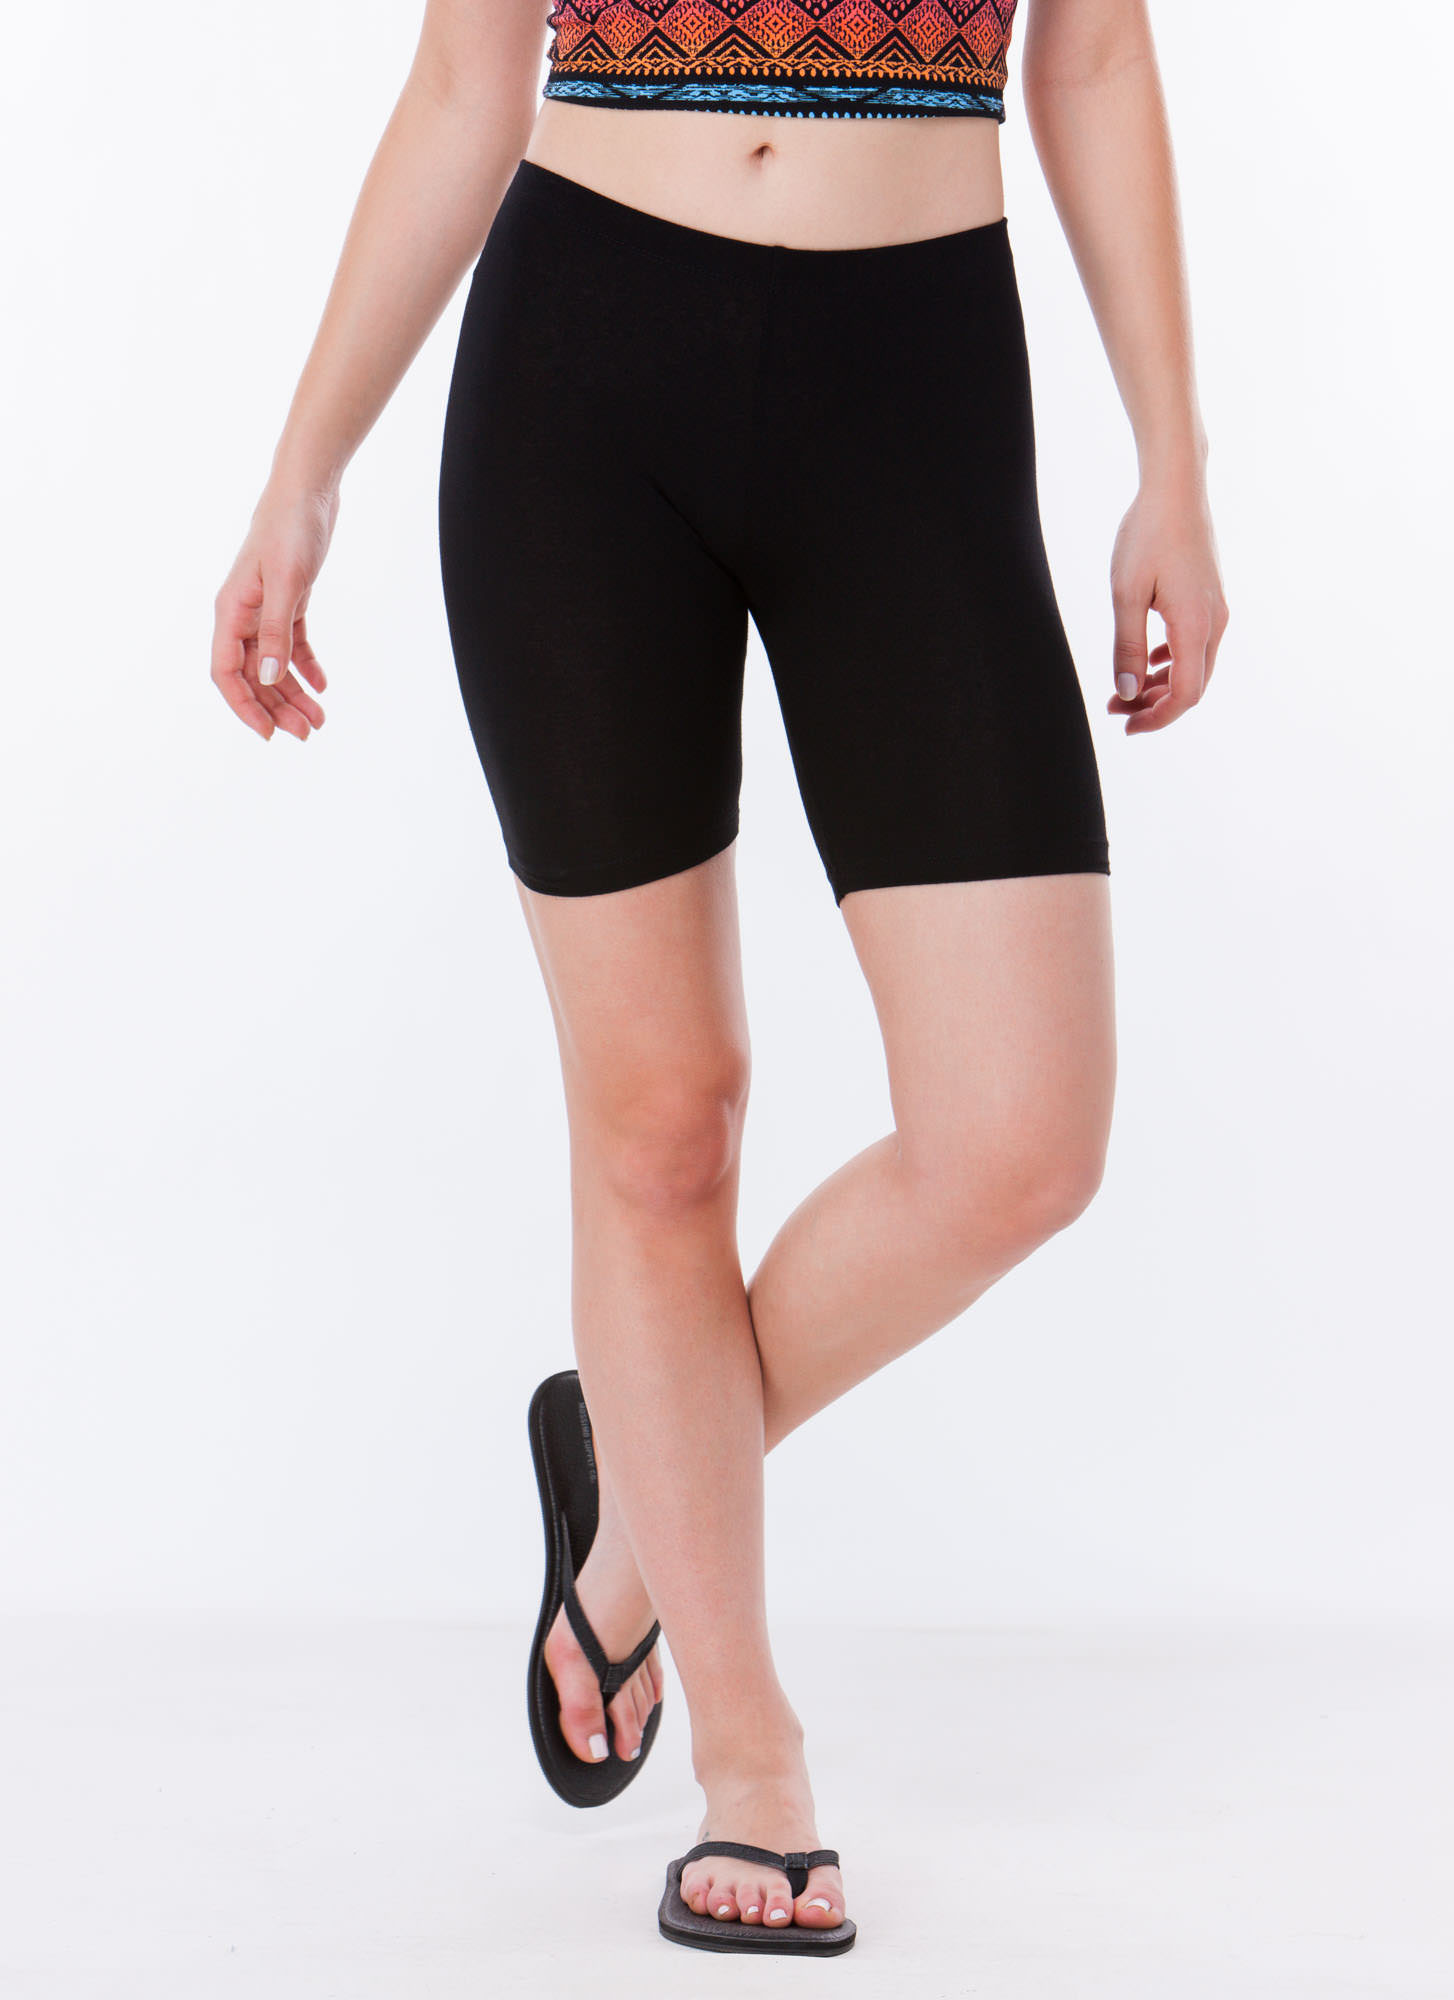 Do Me A Solid Stretchy Biker Shorts